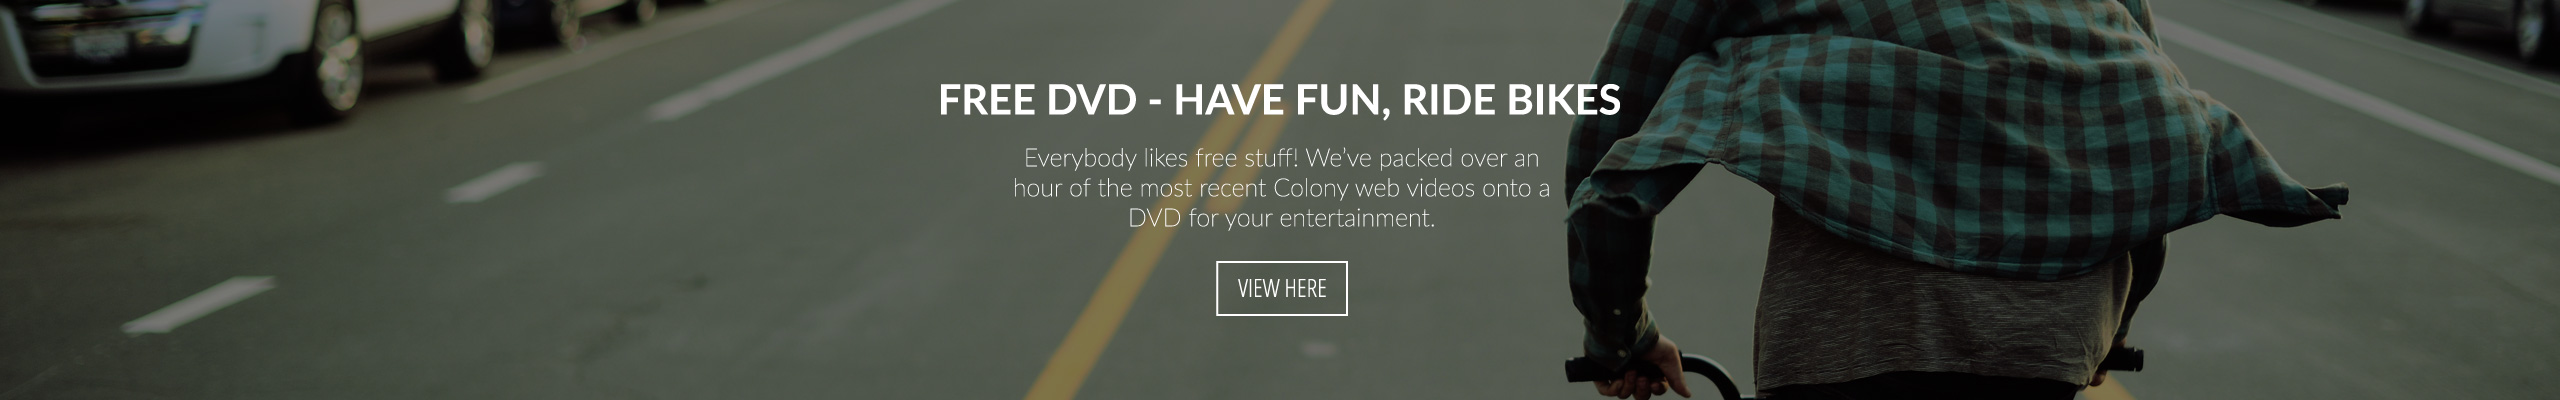 Free DVD - Have Fun, Ride Bikes